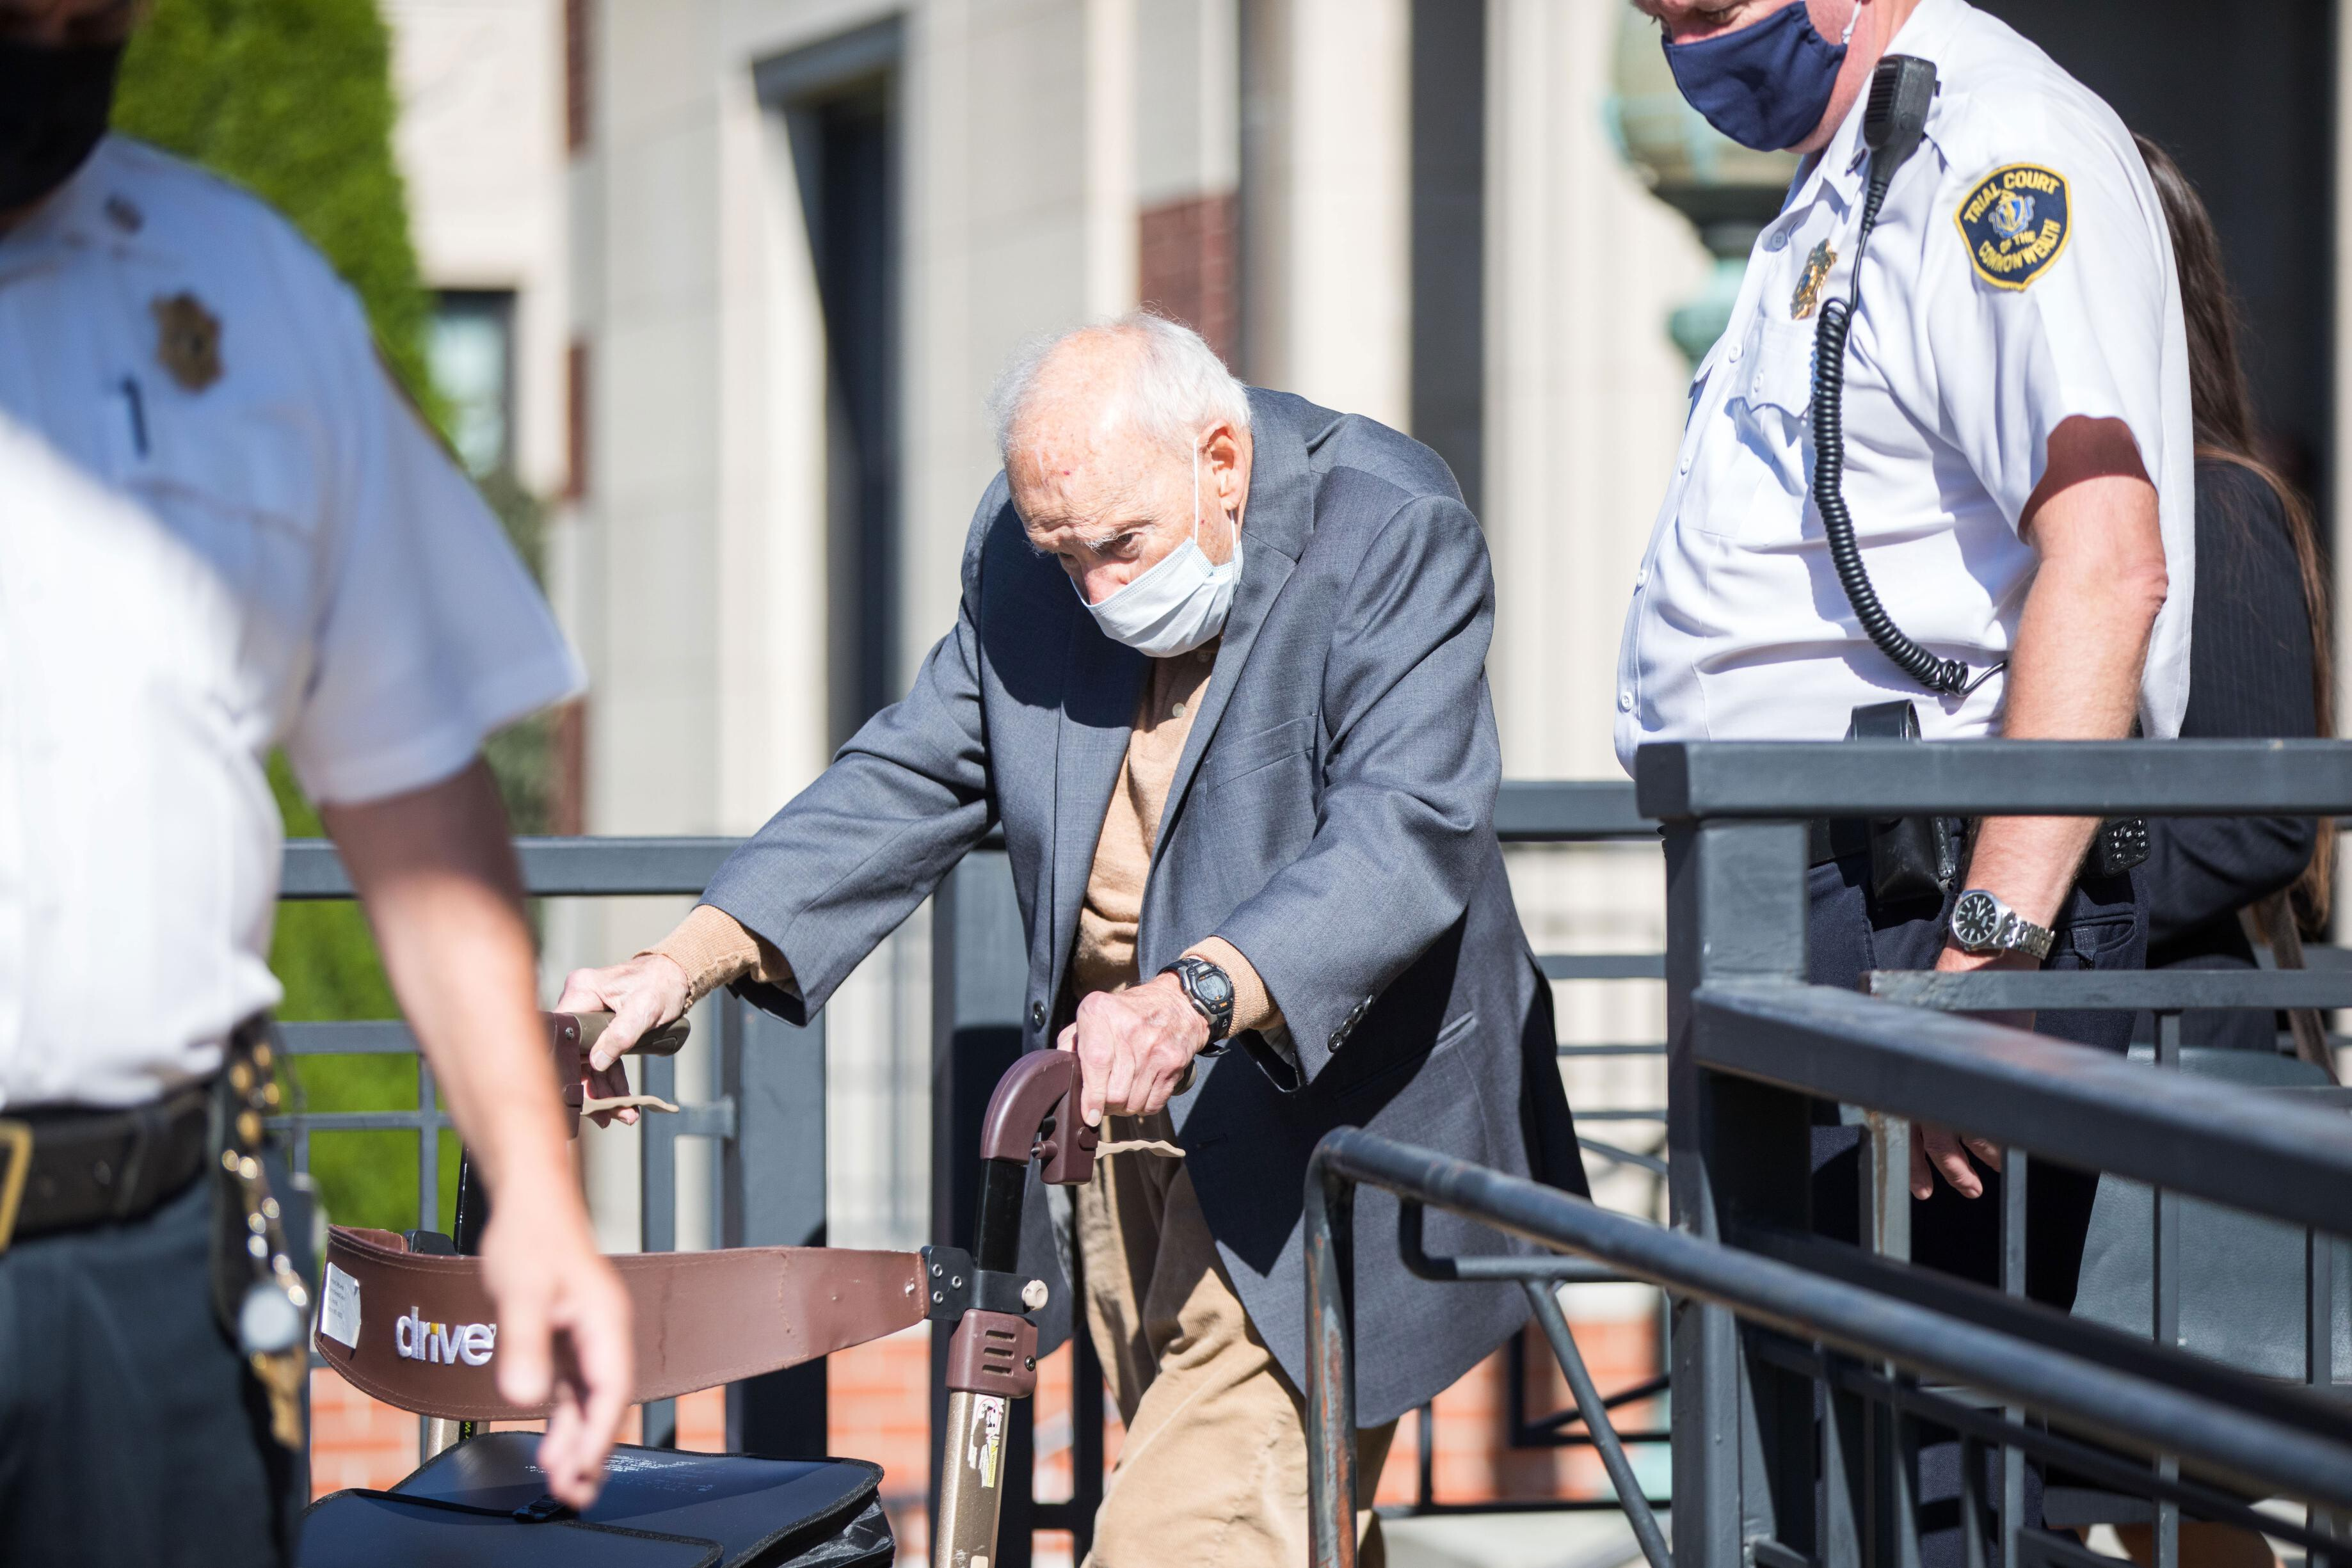 Defrocked Cardinal Theodore McCarrick pleaded not guilty to sexual assault charges